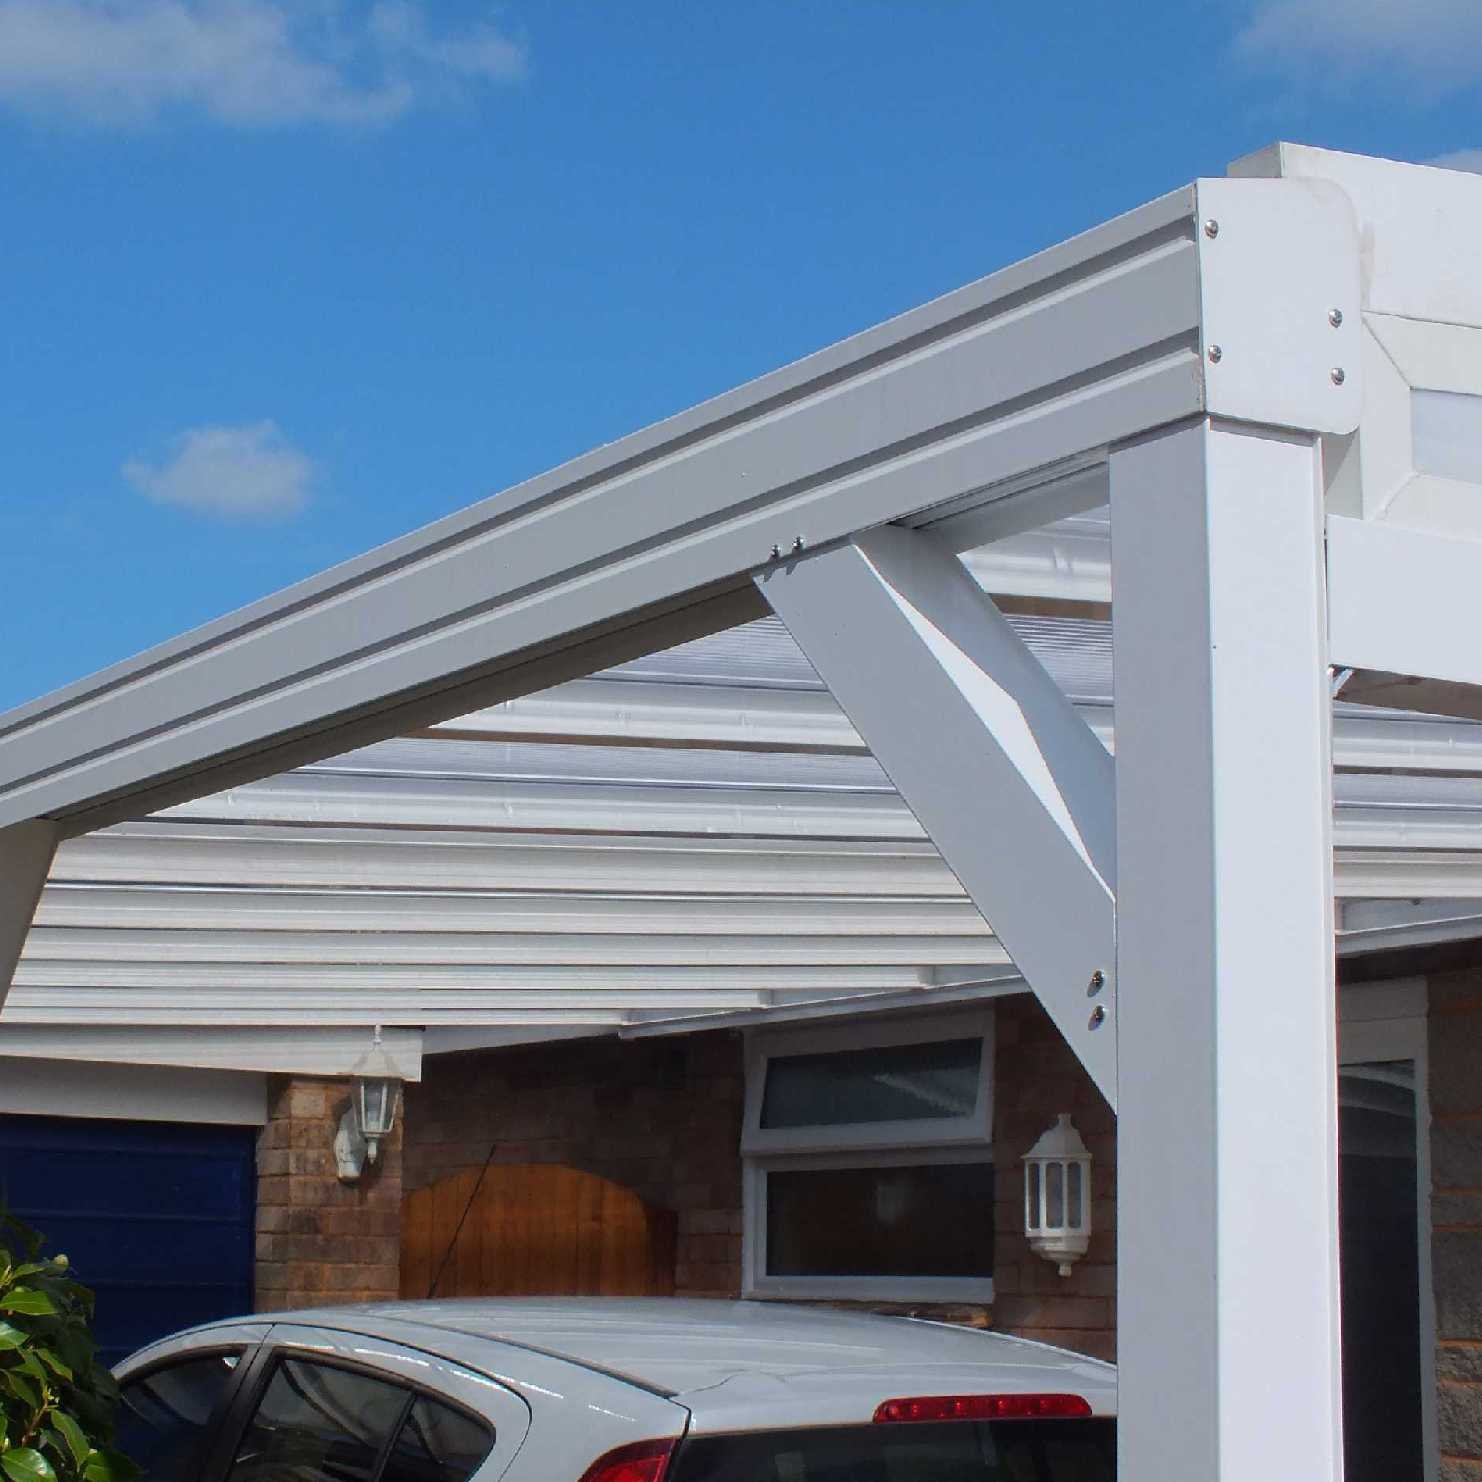 Great deals on Omega Smart Lean-To Canopy with 16mm Polycarbonate Glazing - 9.1m (W) x 4.5m (P), (5) Supporting Posts